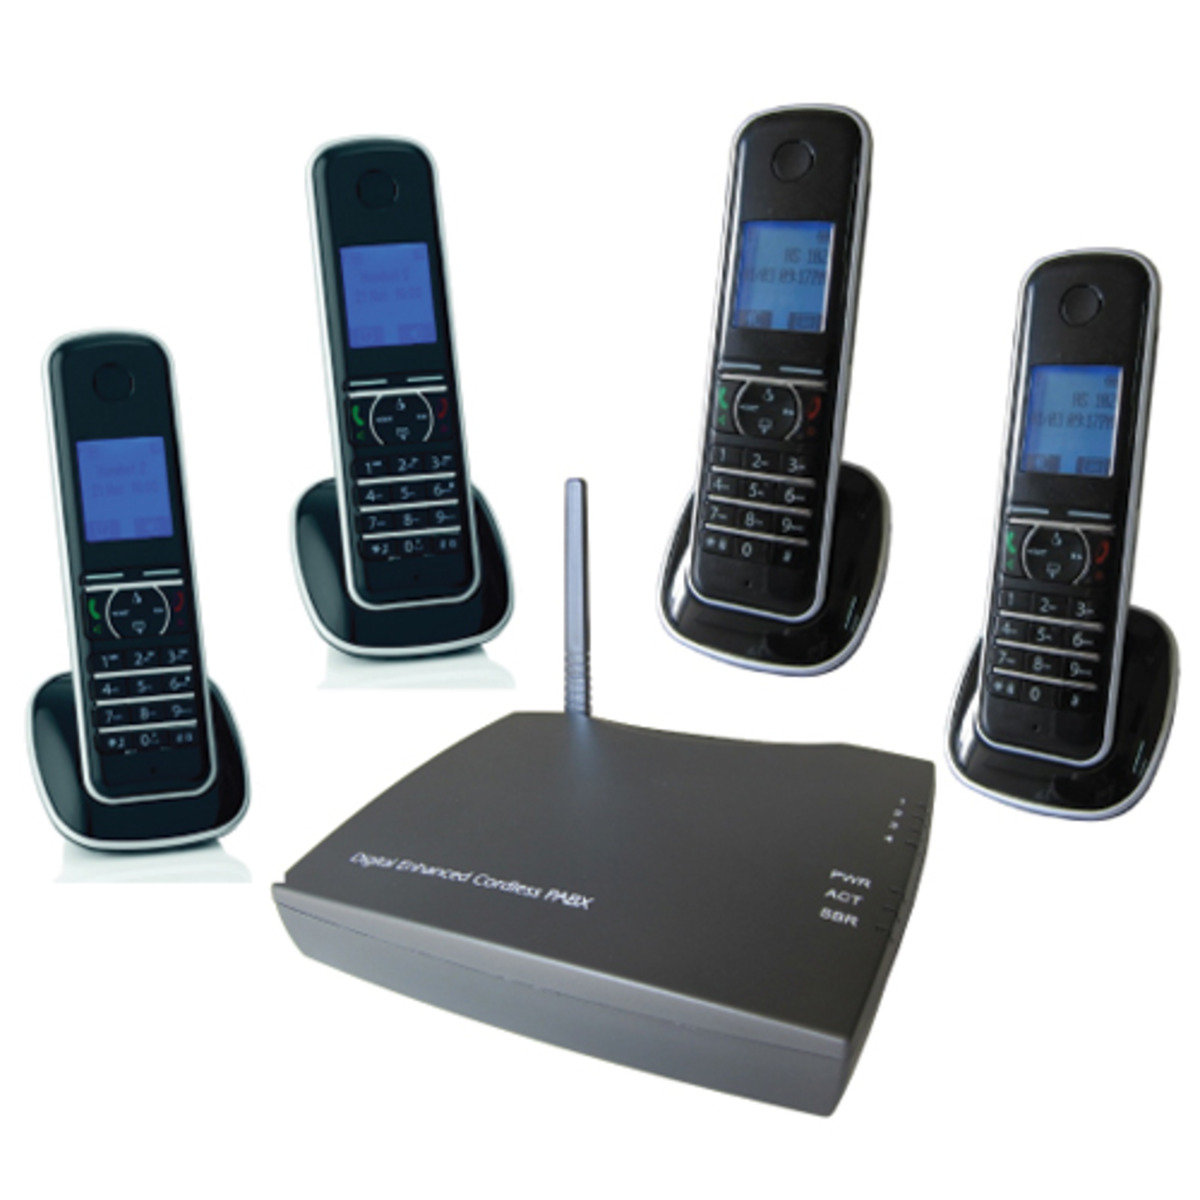 UT200-4HS Digital Cordless Phone Systems (includes 4 Digital Telephone Handsets)